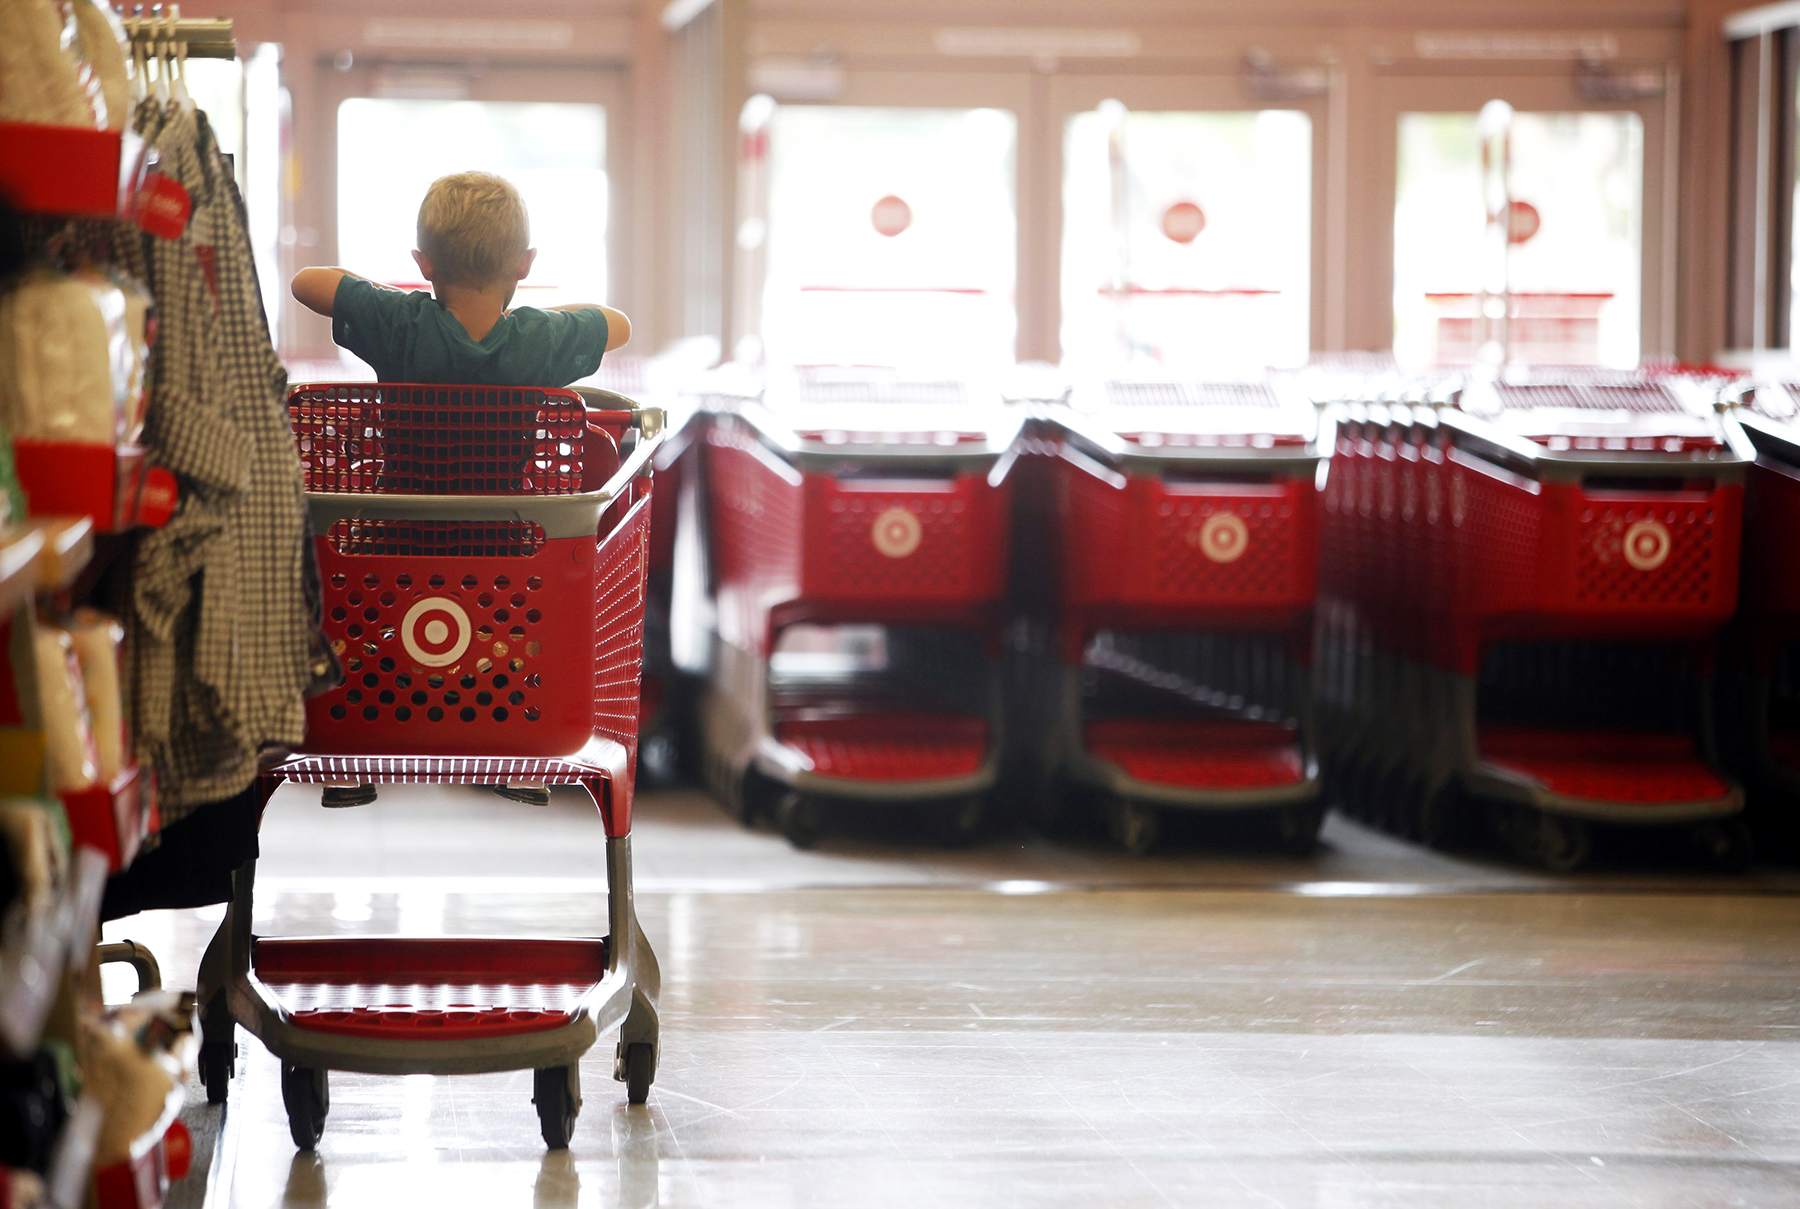 Target Is Making a Big Change to Its Kids' Food Section